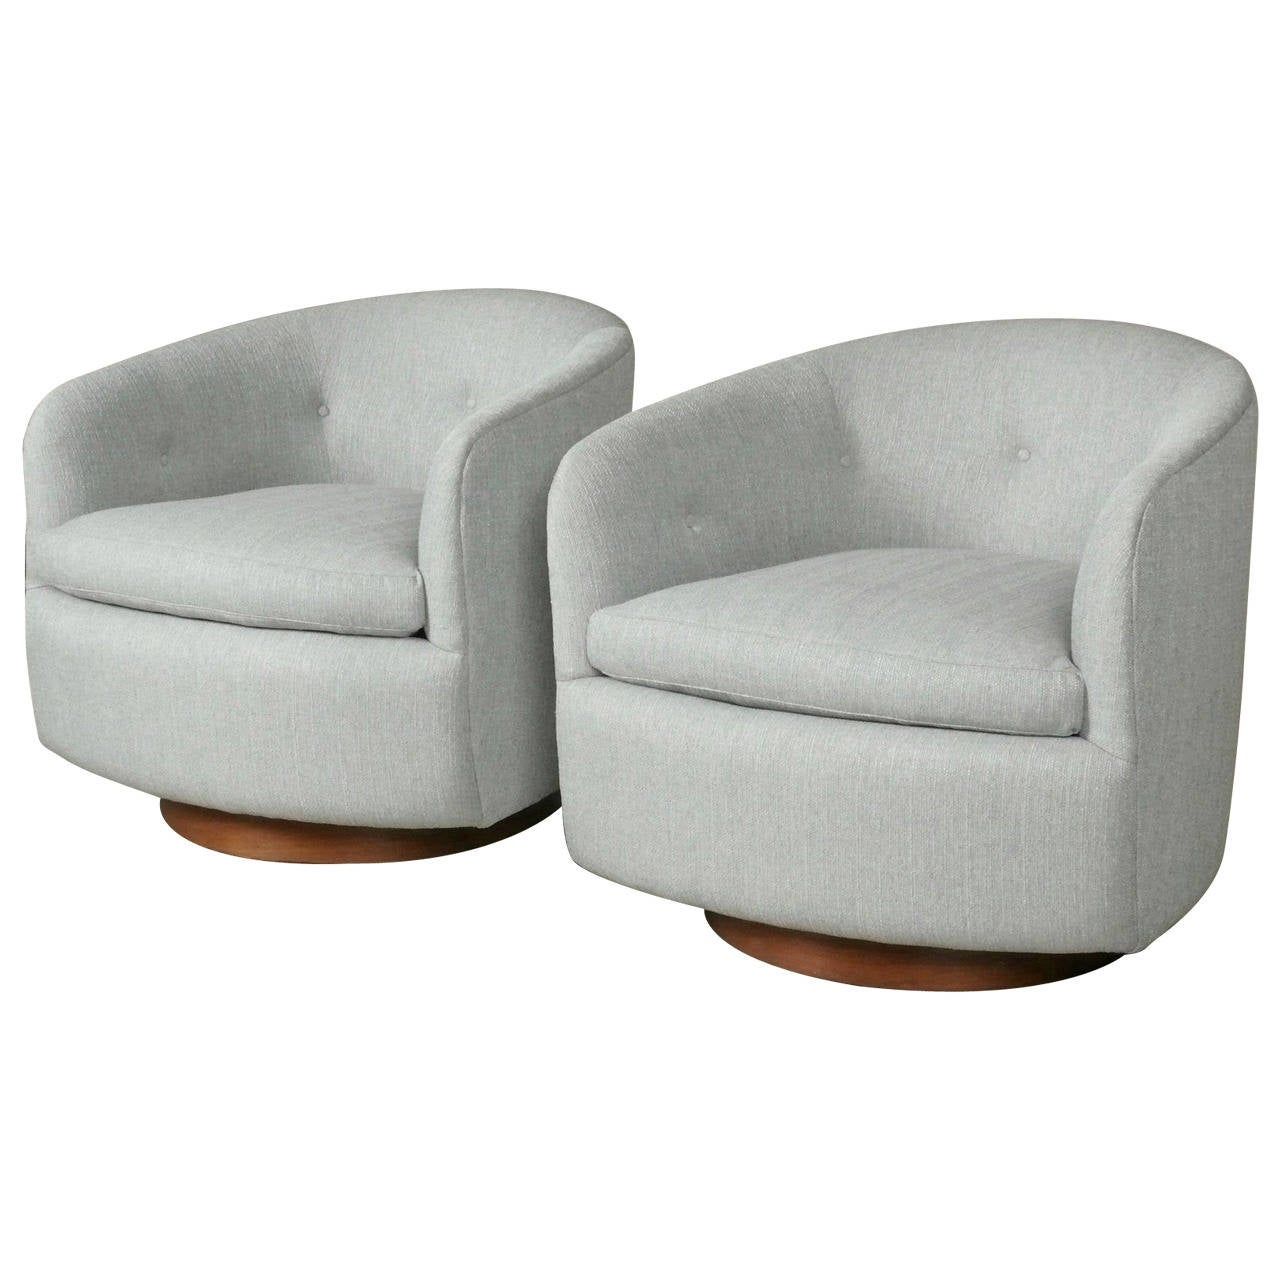 swivel tub chairs hanging chair spring pair of rocking by milo baughman circa